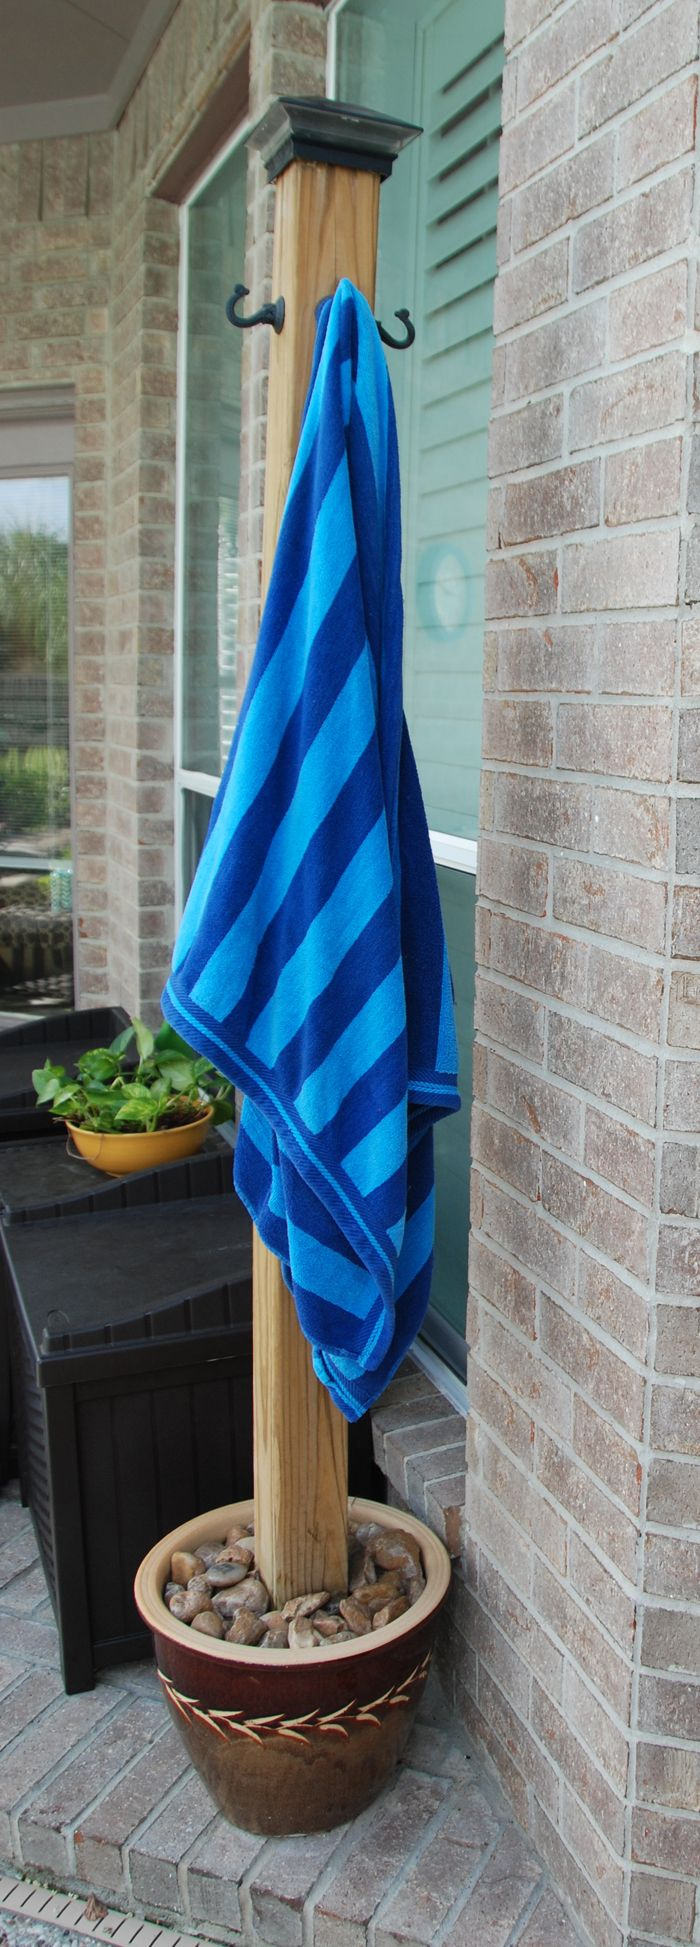 DIY Pool Towel Holder - We made this stand to hang our wet pool towels to